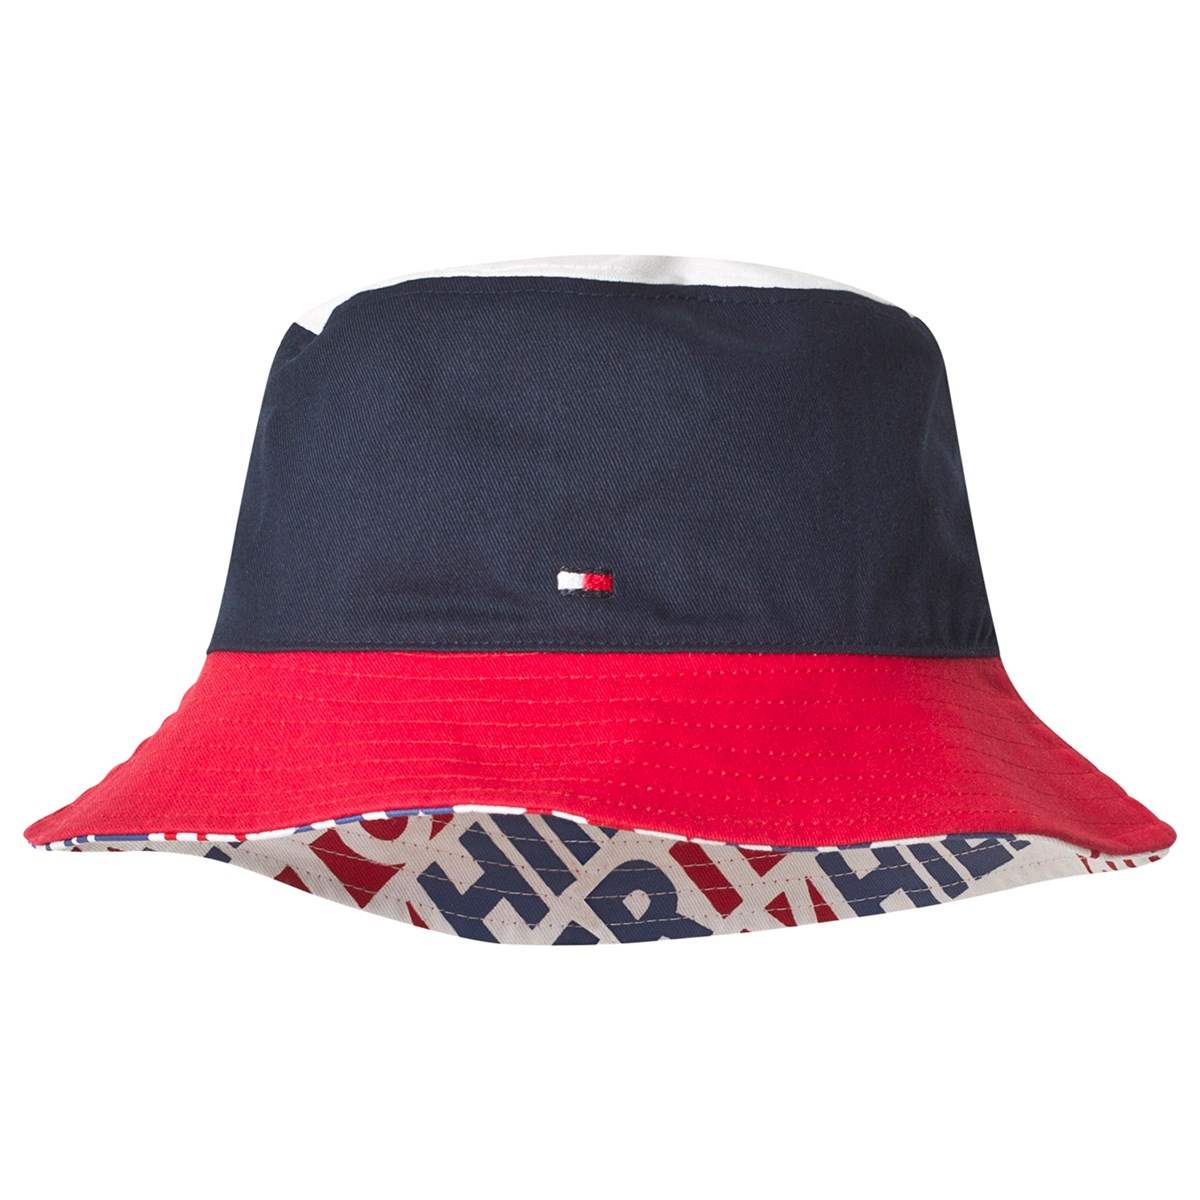 23edf73d7d62a Tommy Hilfiger Navy   Red Reversible Bucket Hat